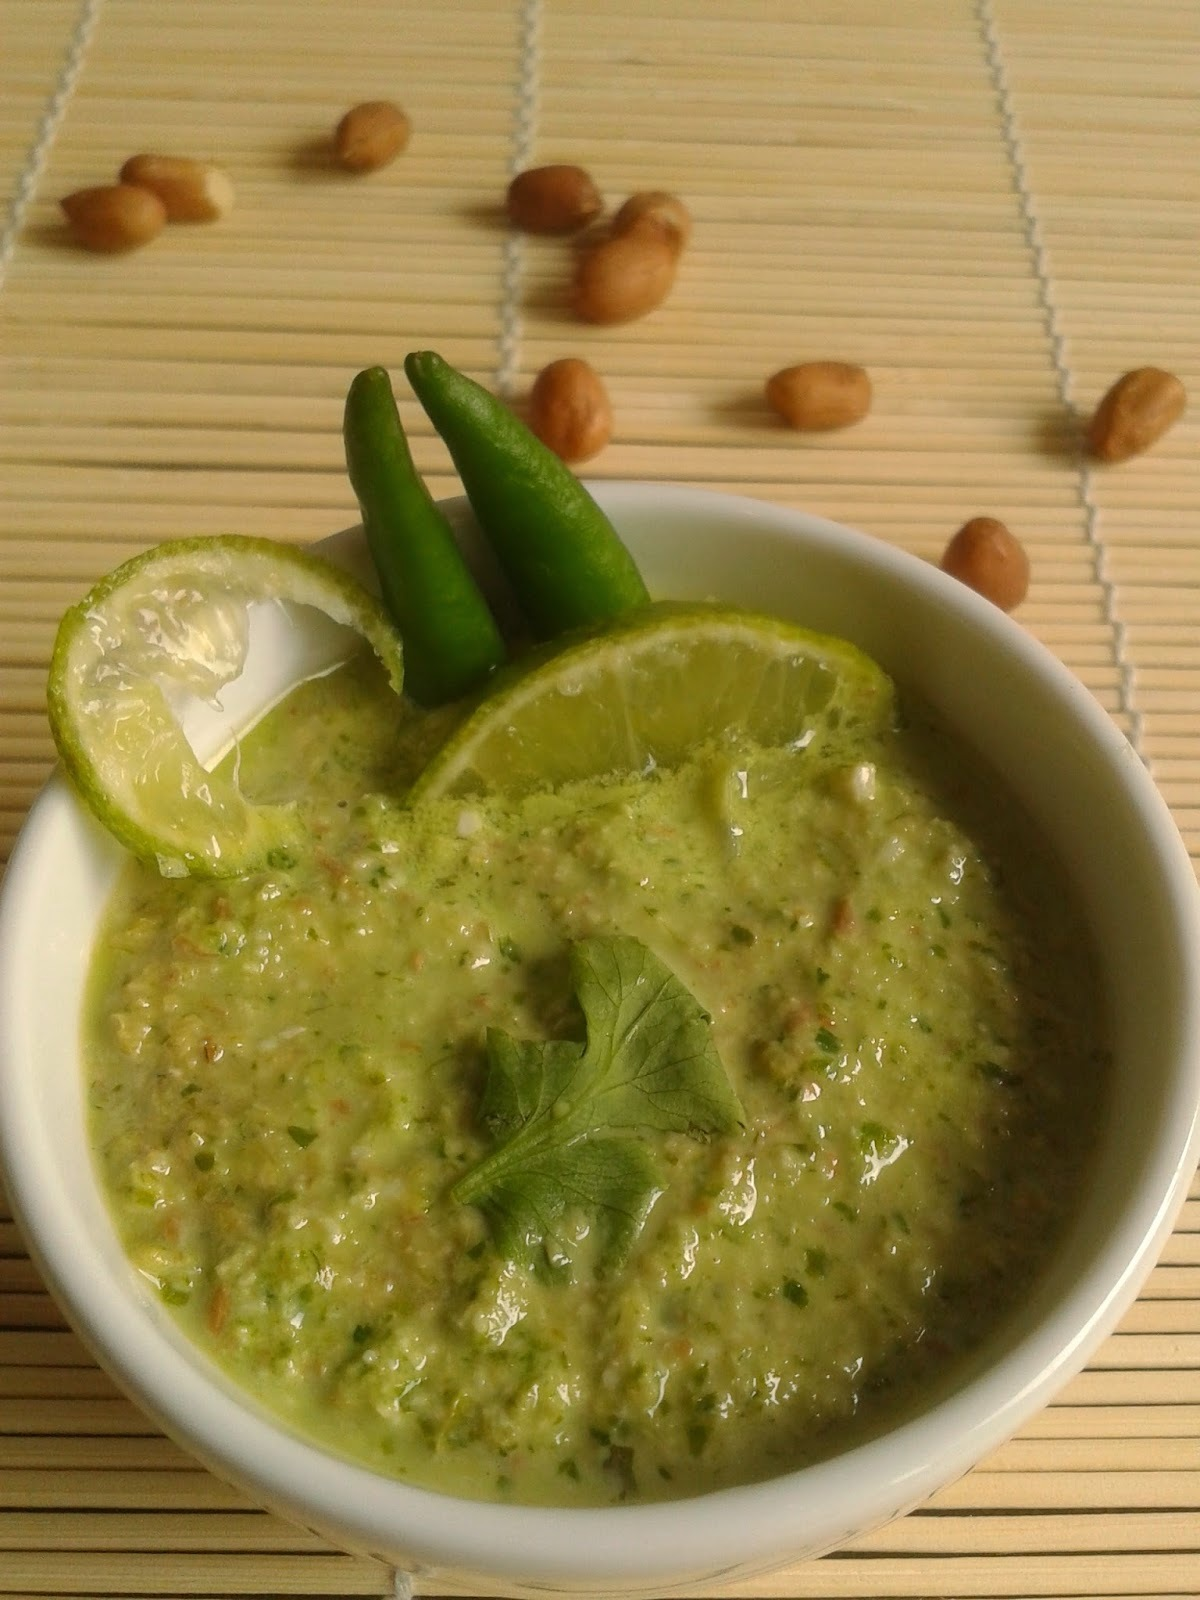 Recipe of Peanut Coriander Chutney | How to Make Peanut Coriander Chutney